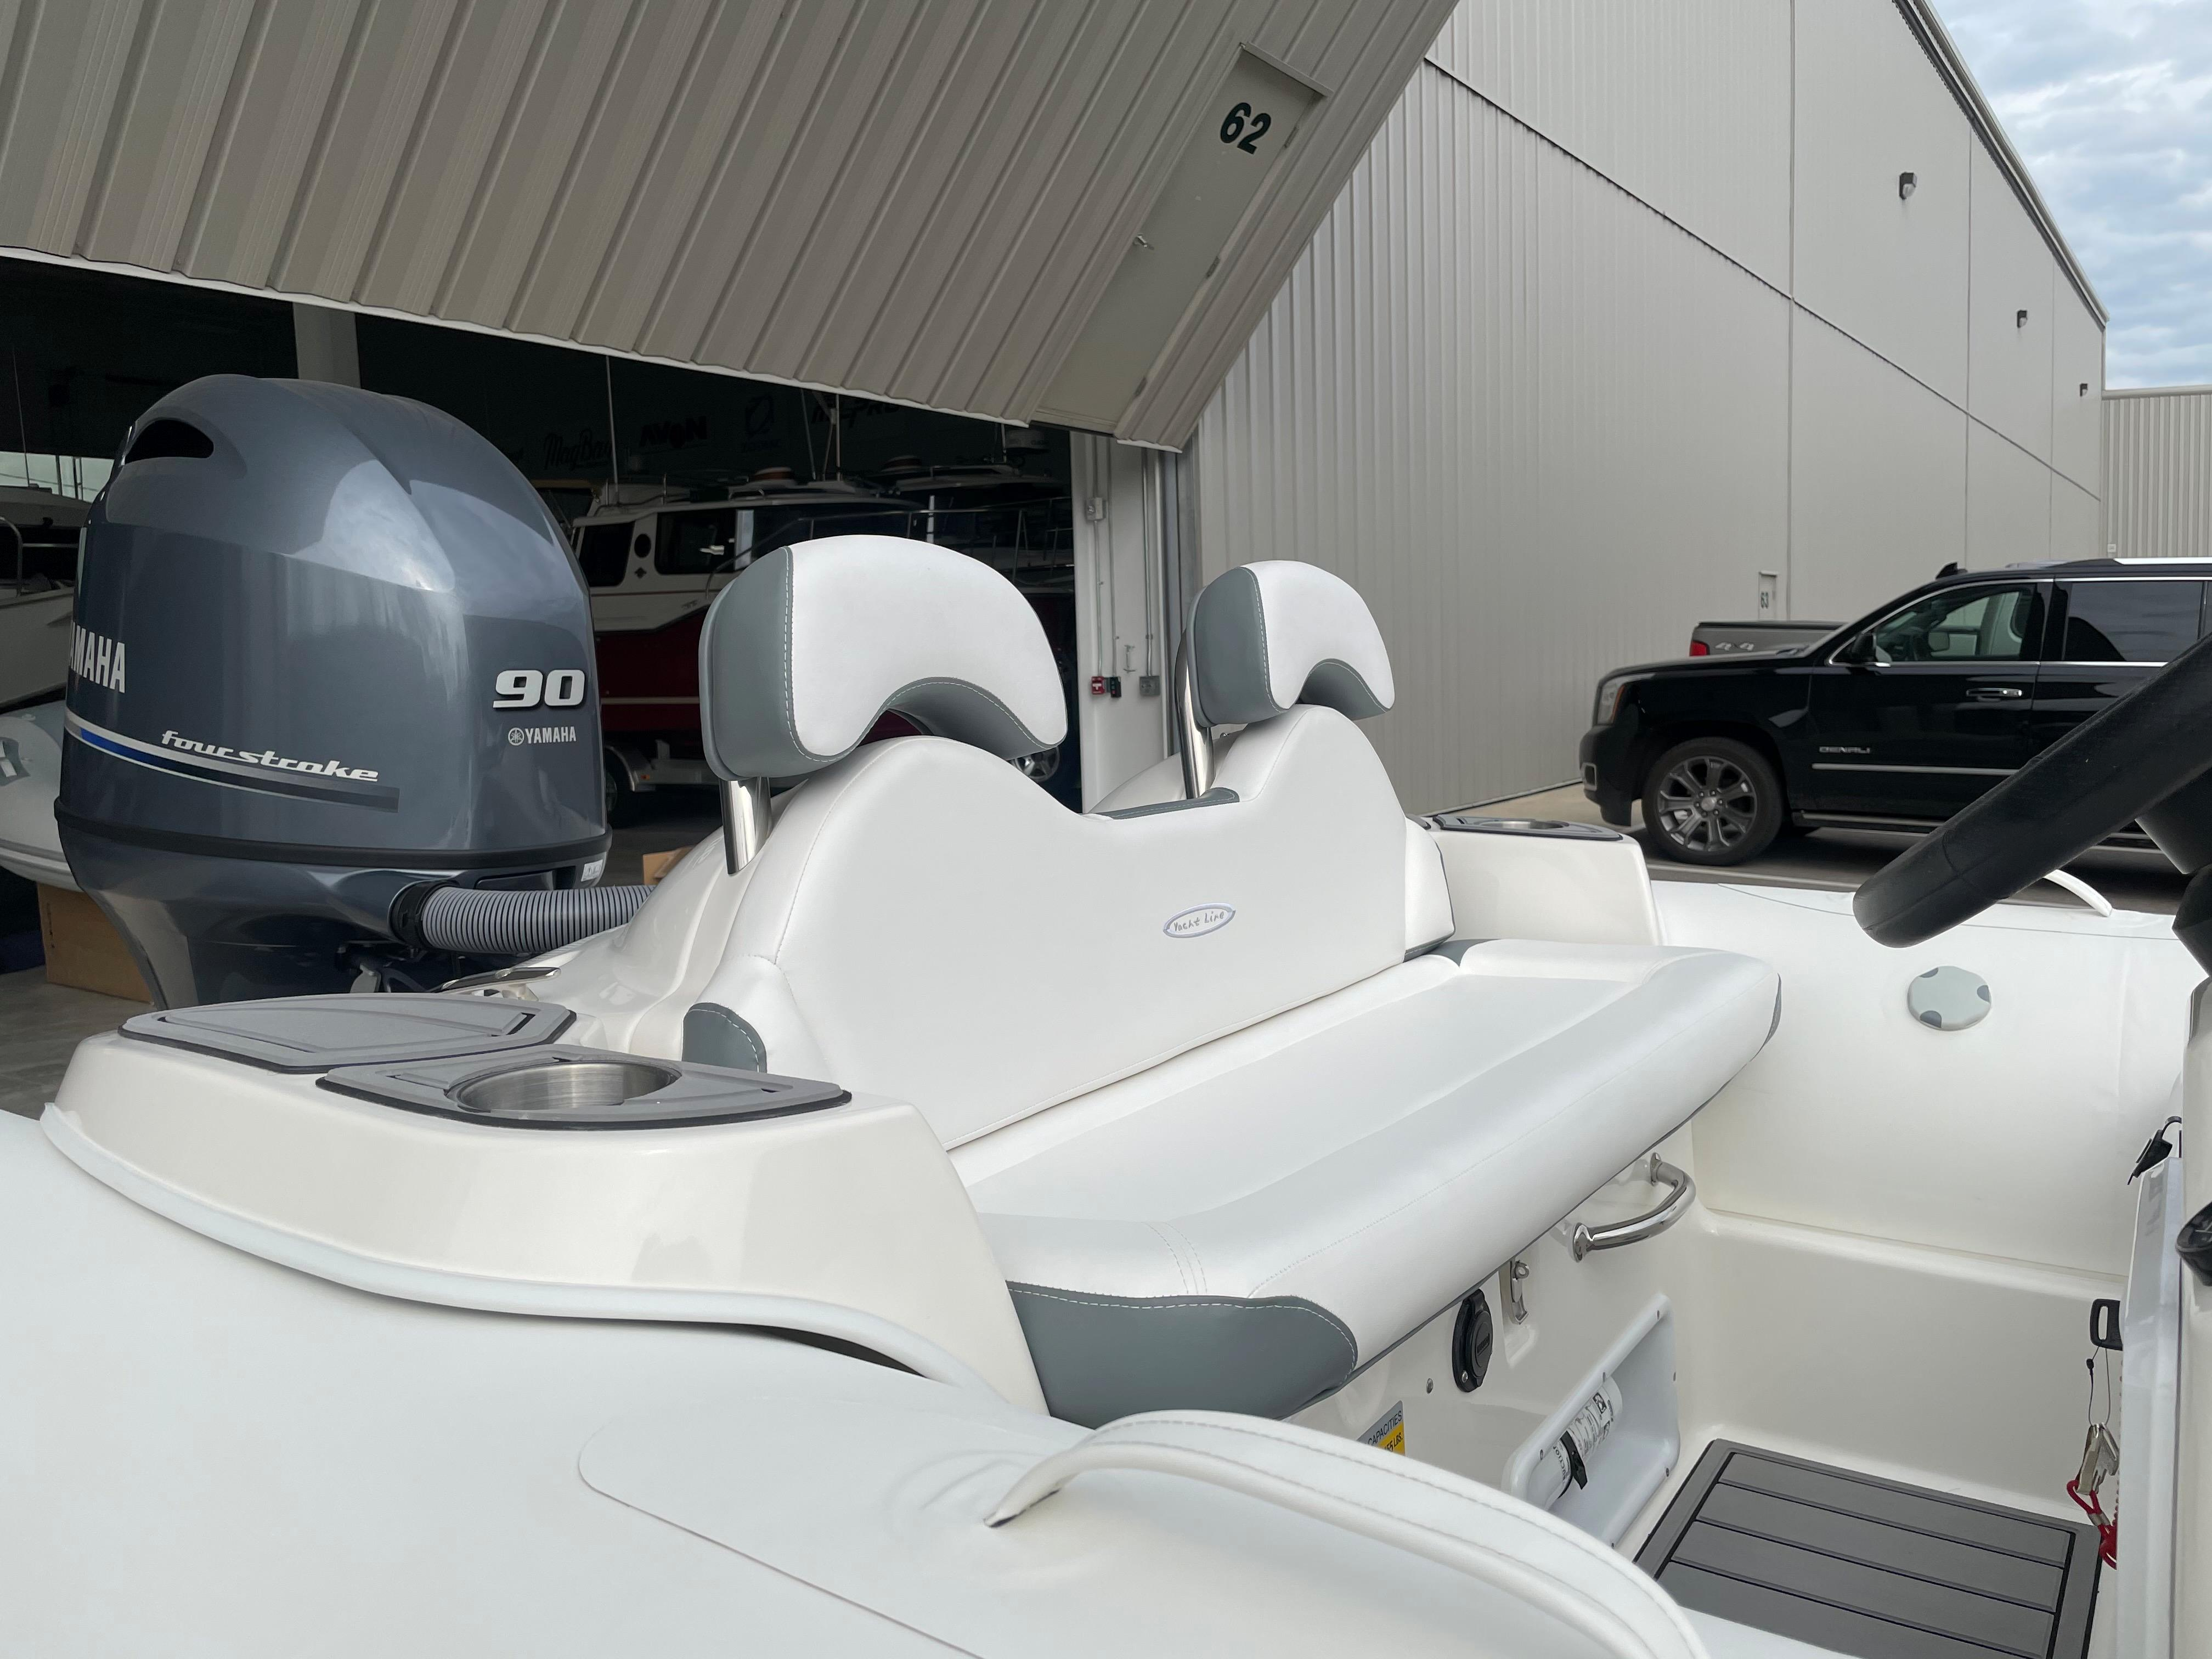 2022 Zodiac Yachtline 490 Deluxe NEO GL Edition 90hp On Order, Image 17